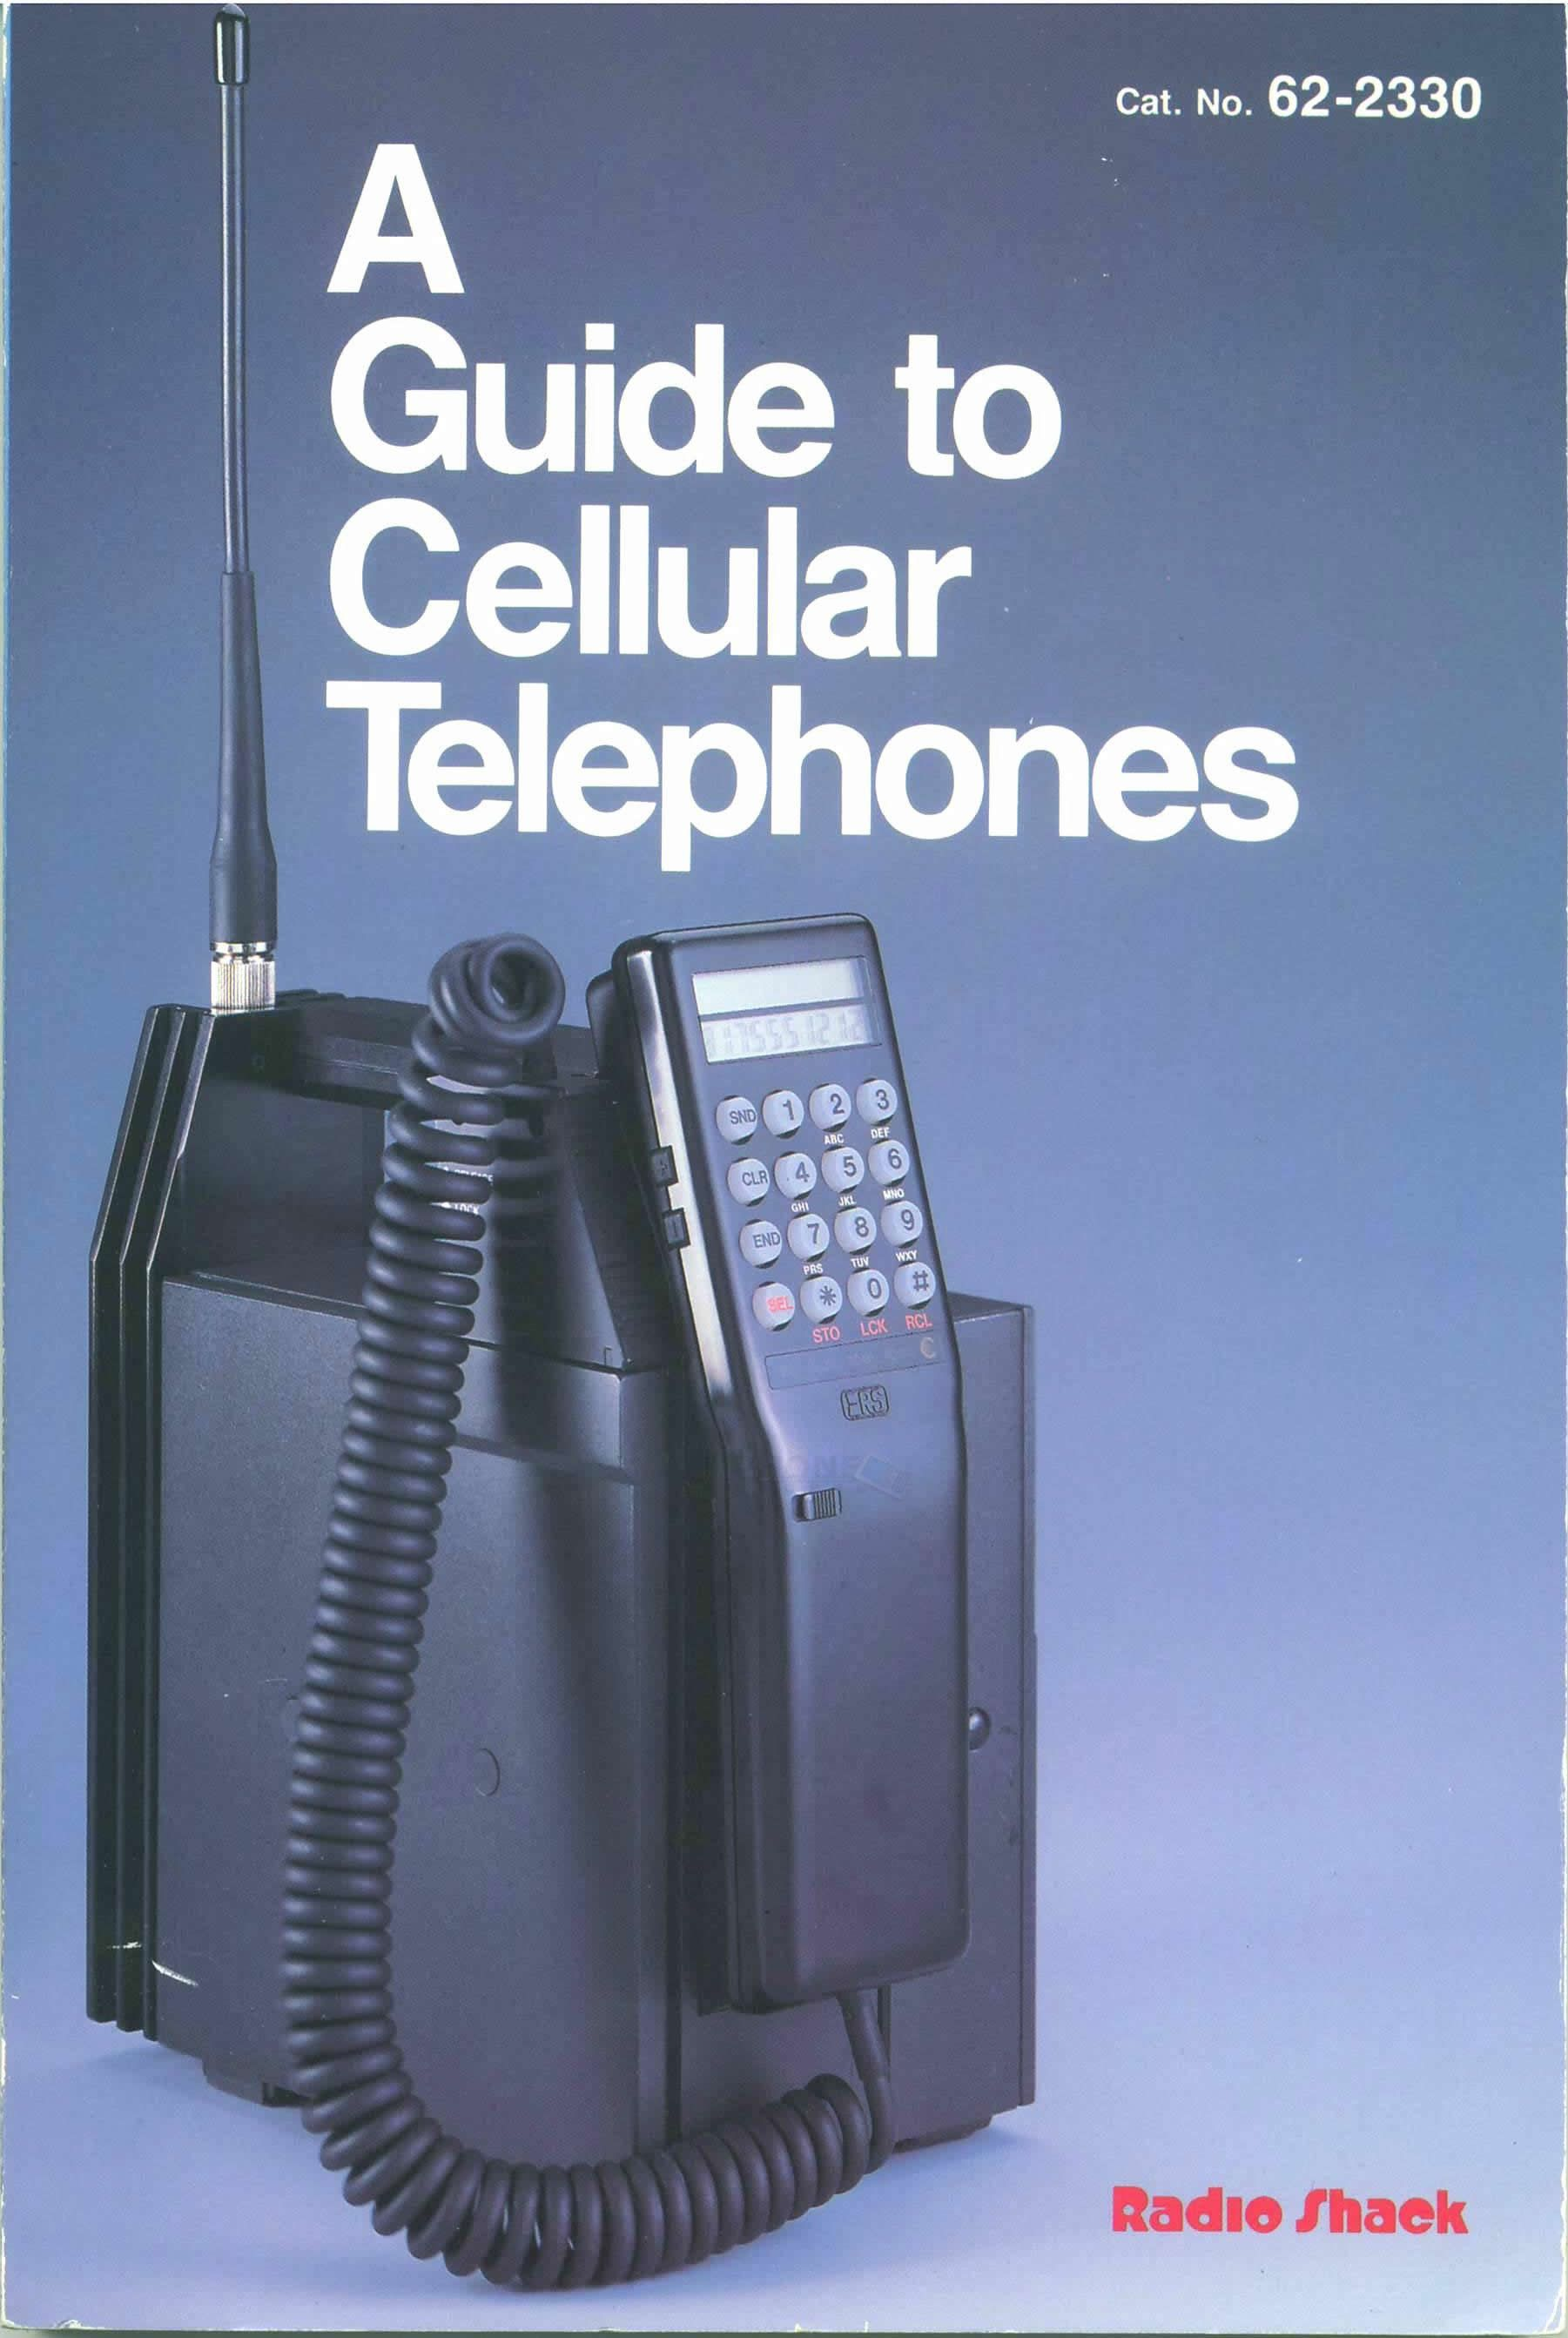 A Guide to Cellular Telephones 1986 Radio Shack Book #135. A friend's dad had one for work, it was really heavy!